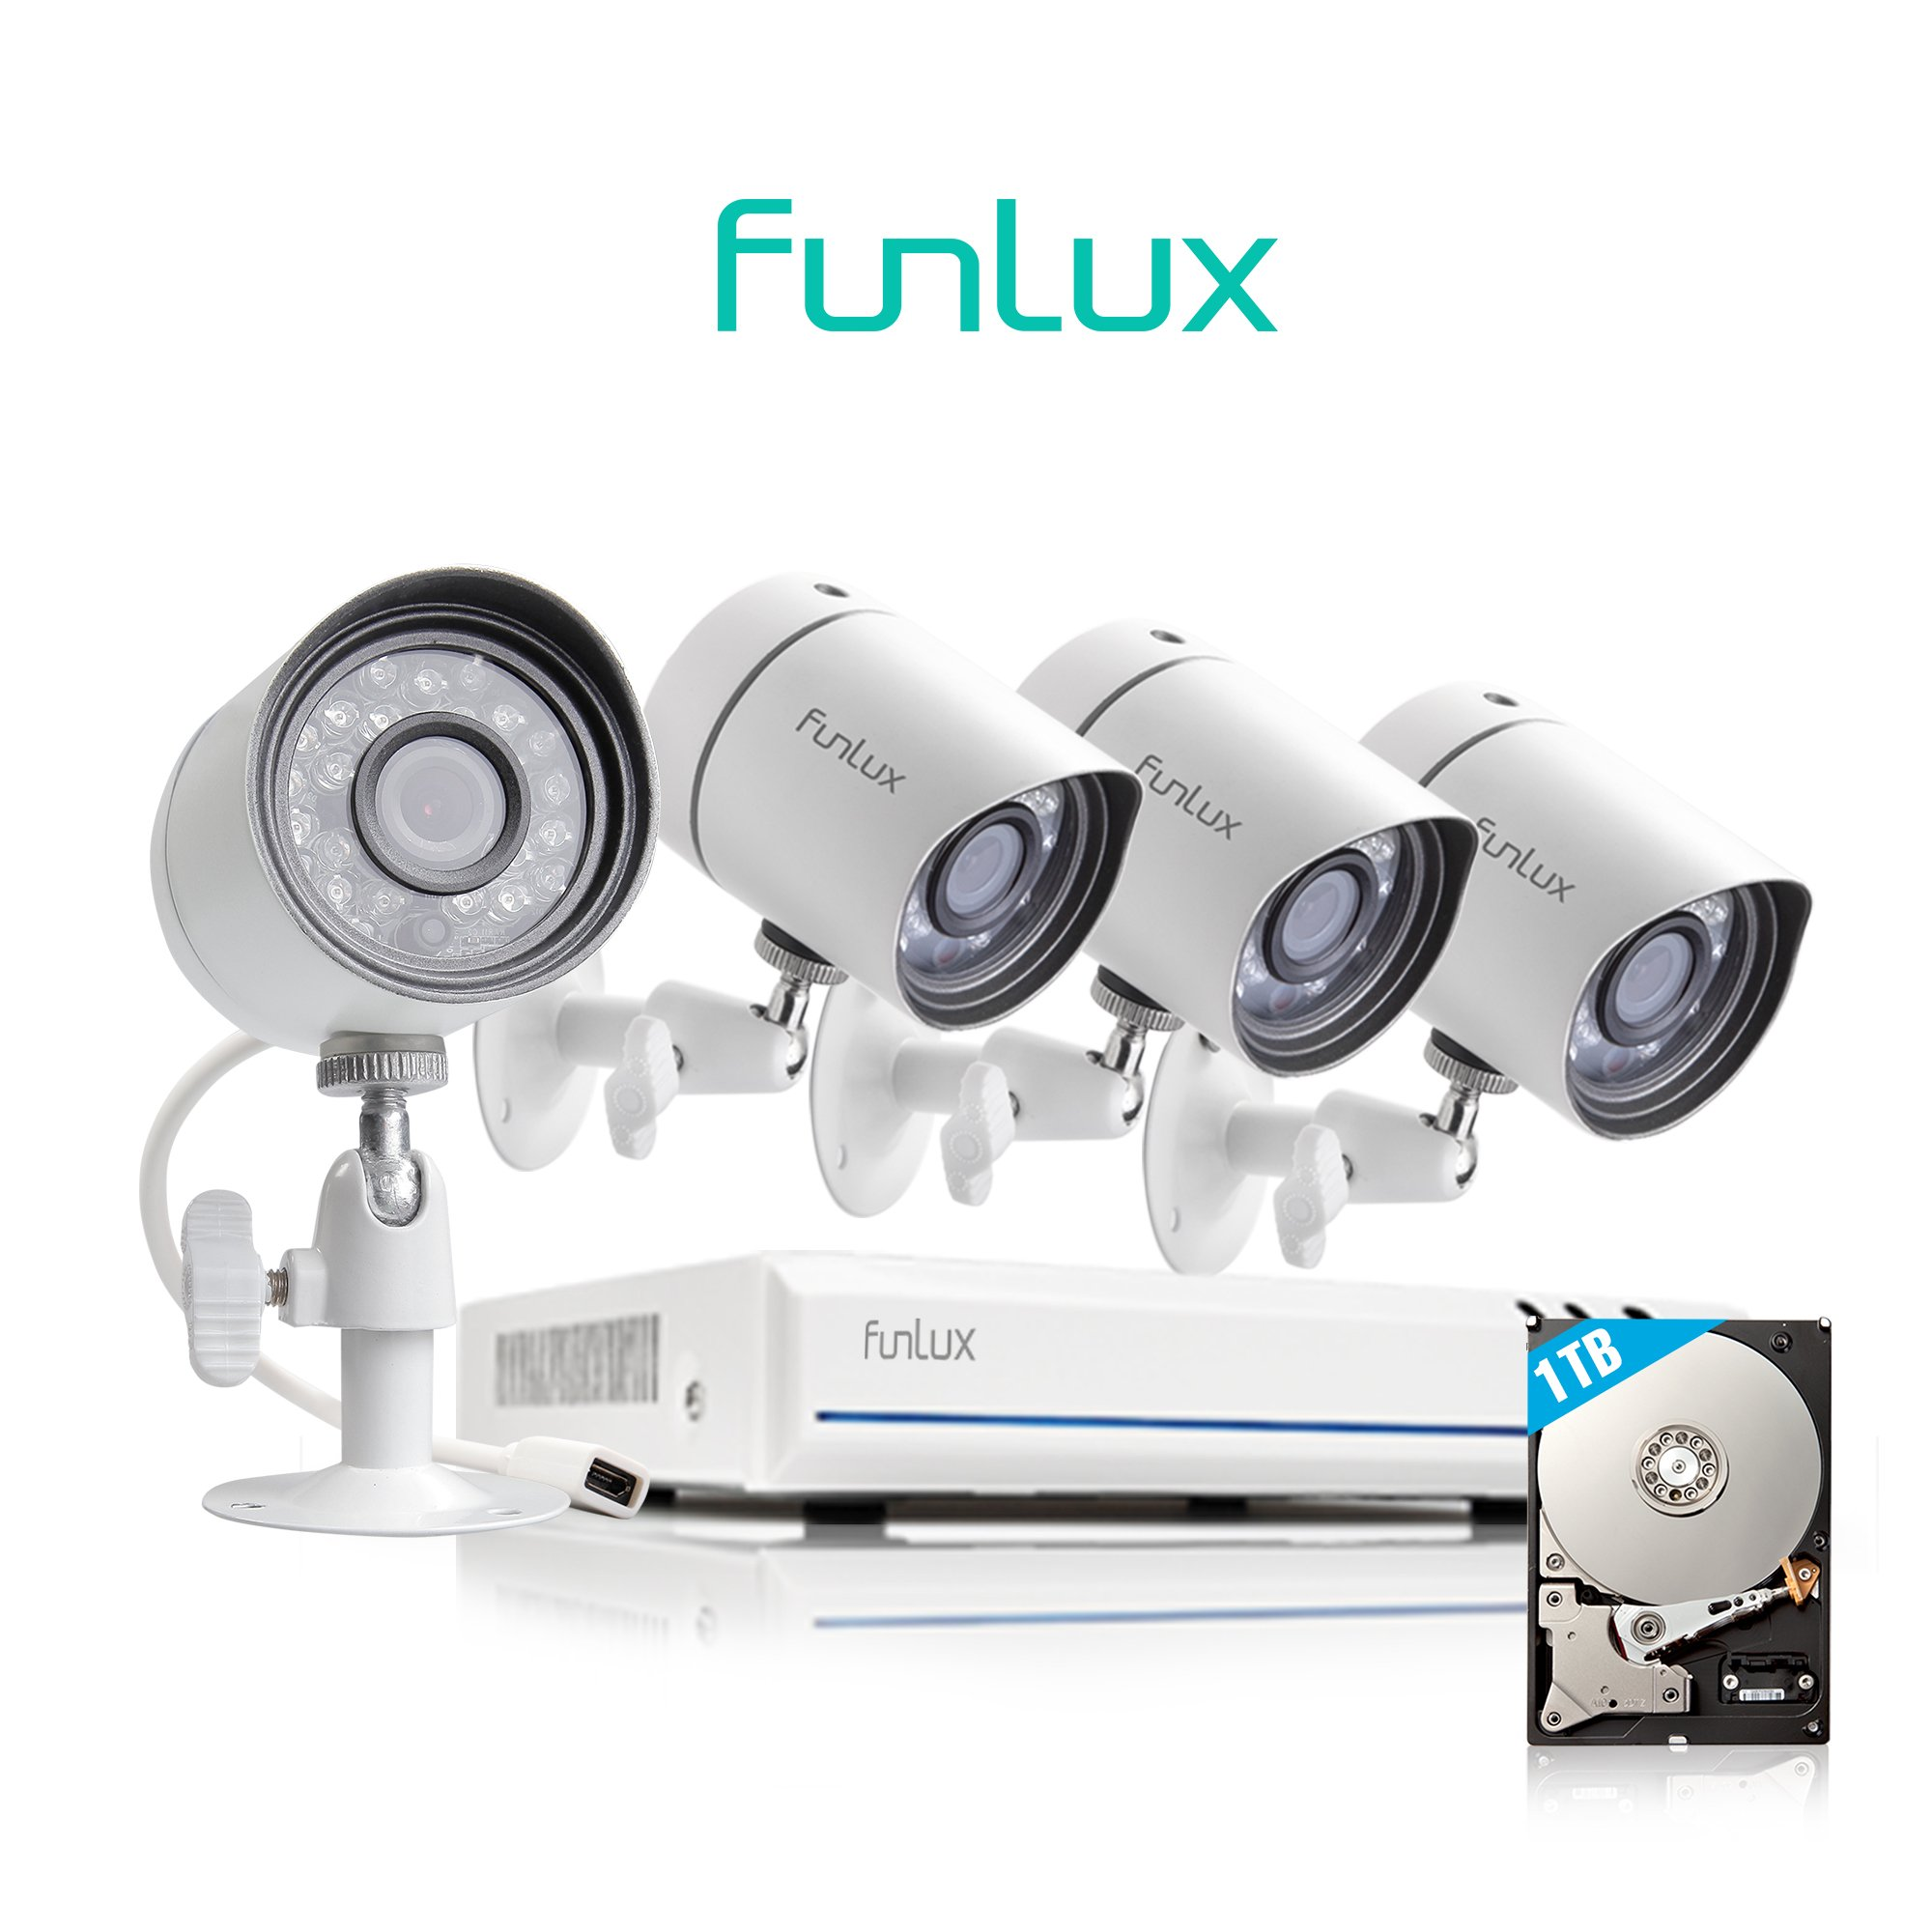 Funlux 4 Channel 1080p HDMI NVR Simplified PoE 4 720p HD Outdoor Indoor Security Camera System 1TB Hard Drive by Funlux